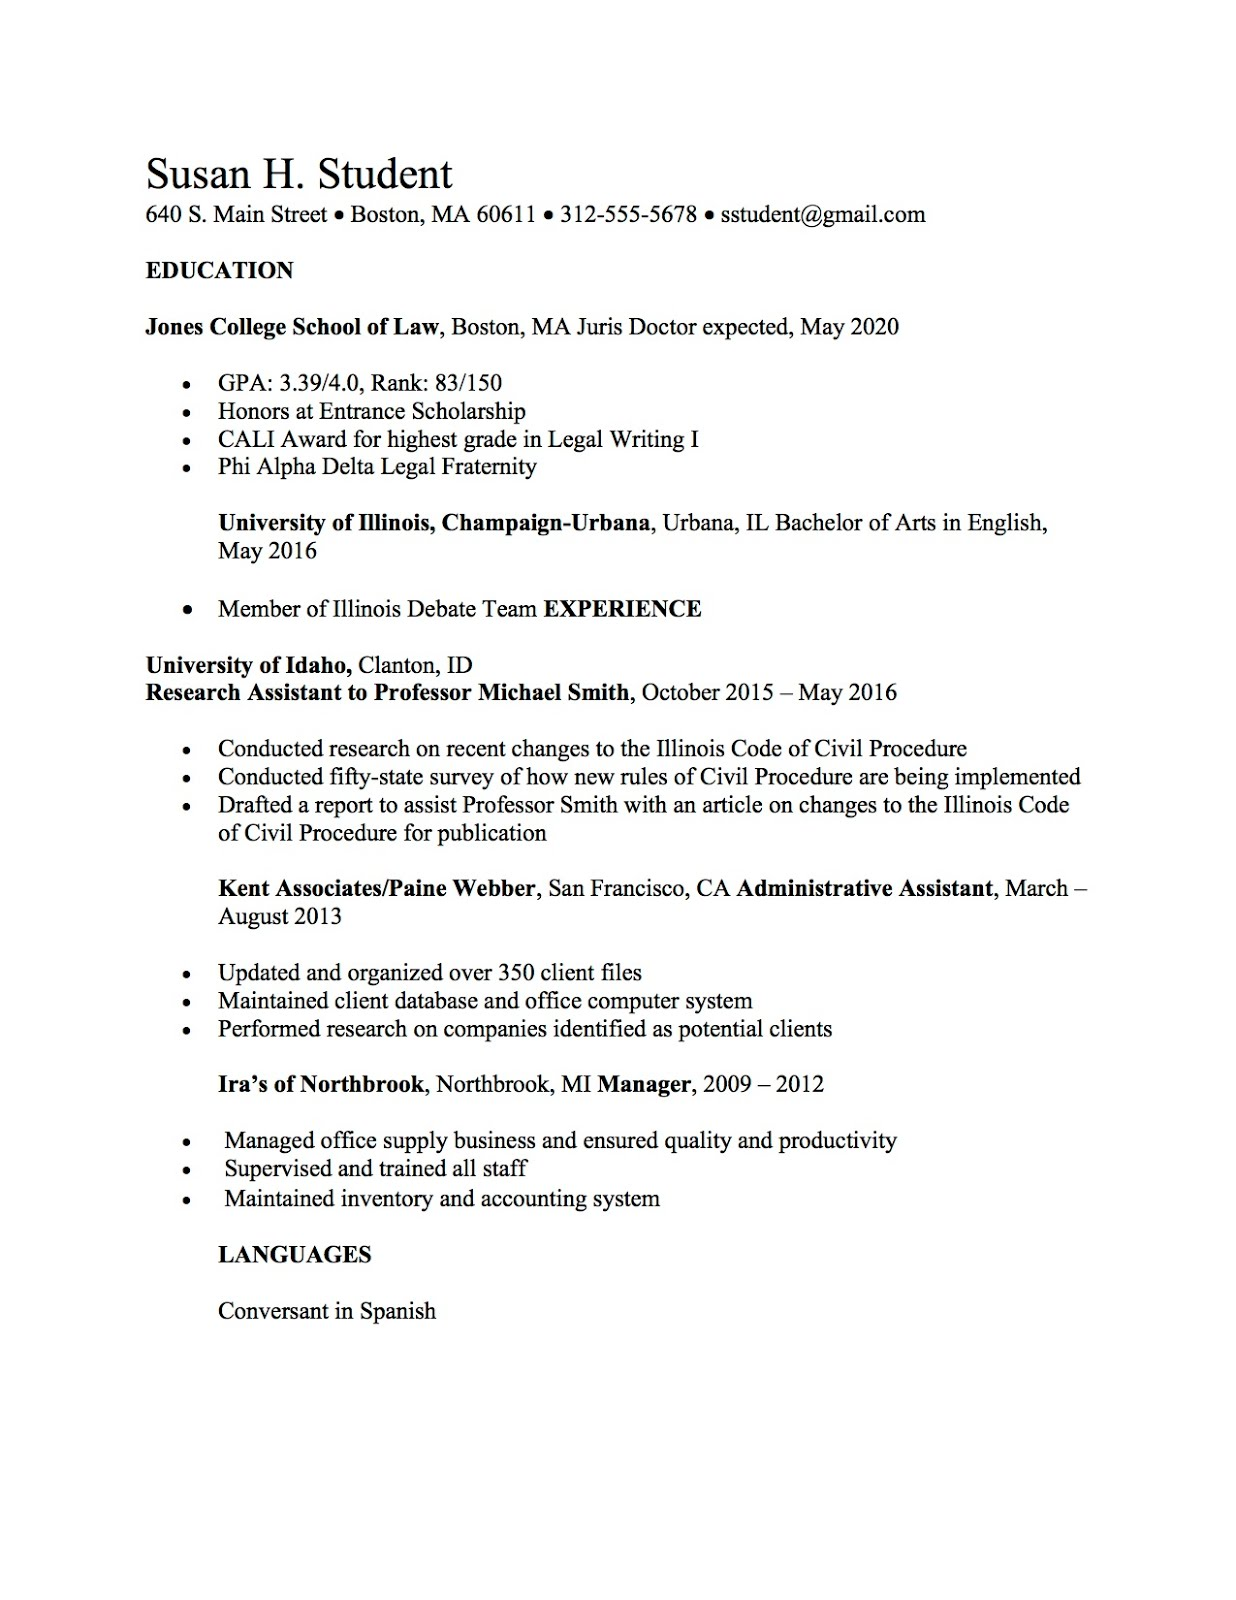 Law School Resume Templates And Samples